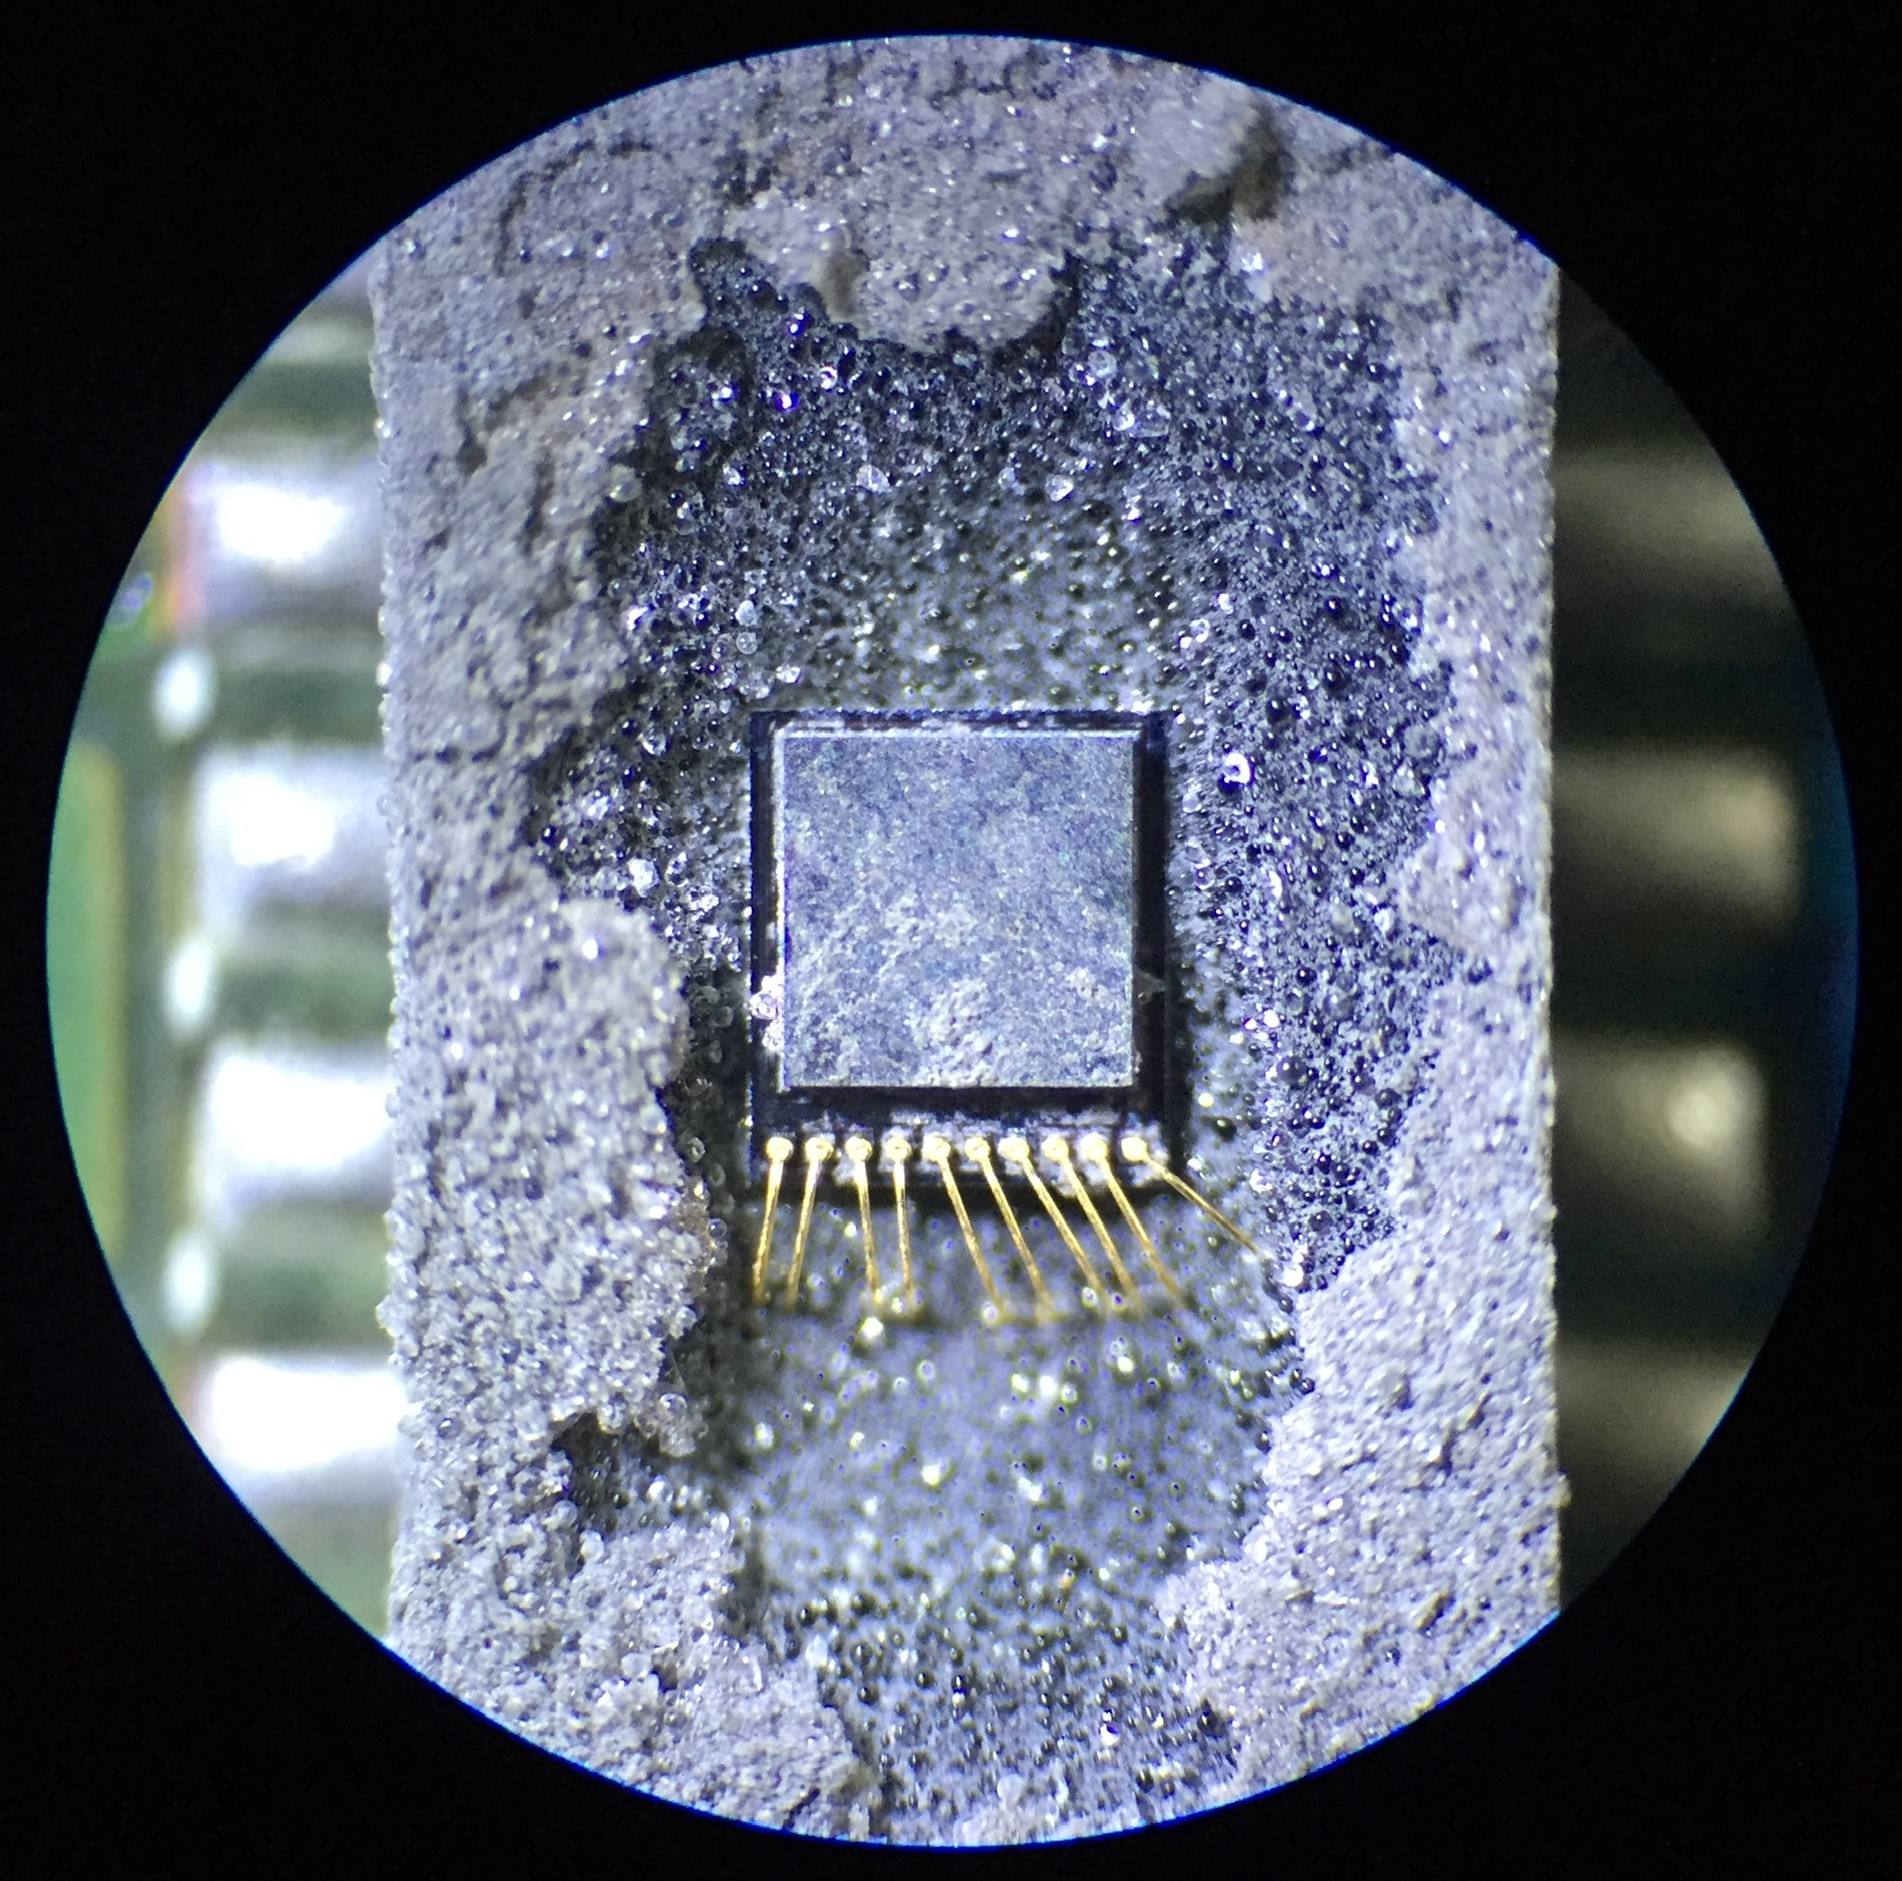 Micro: ADXL345 accelerometer, lid on